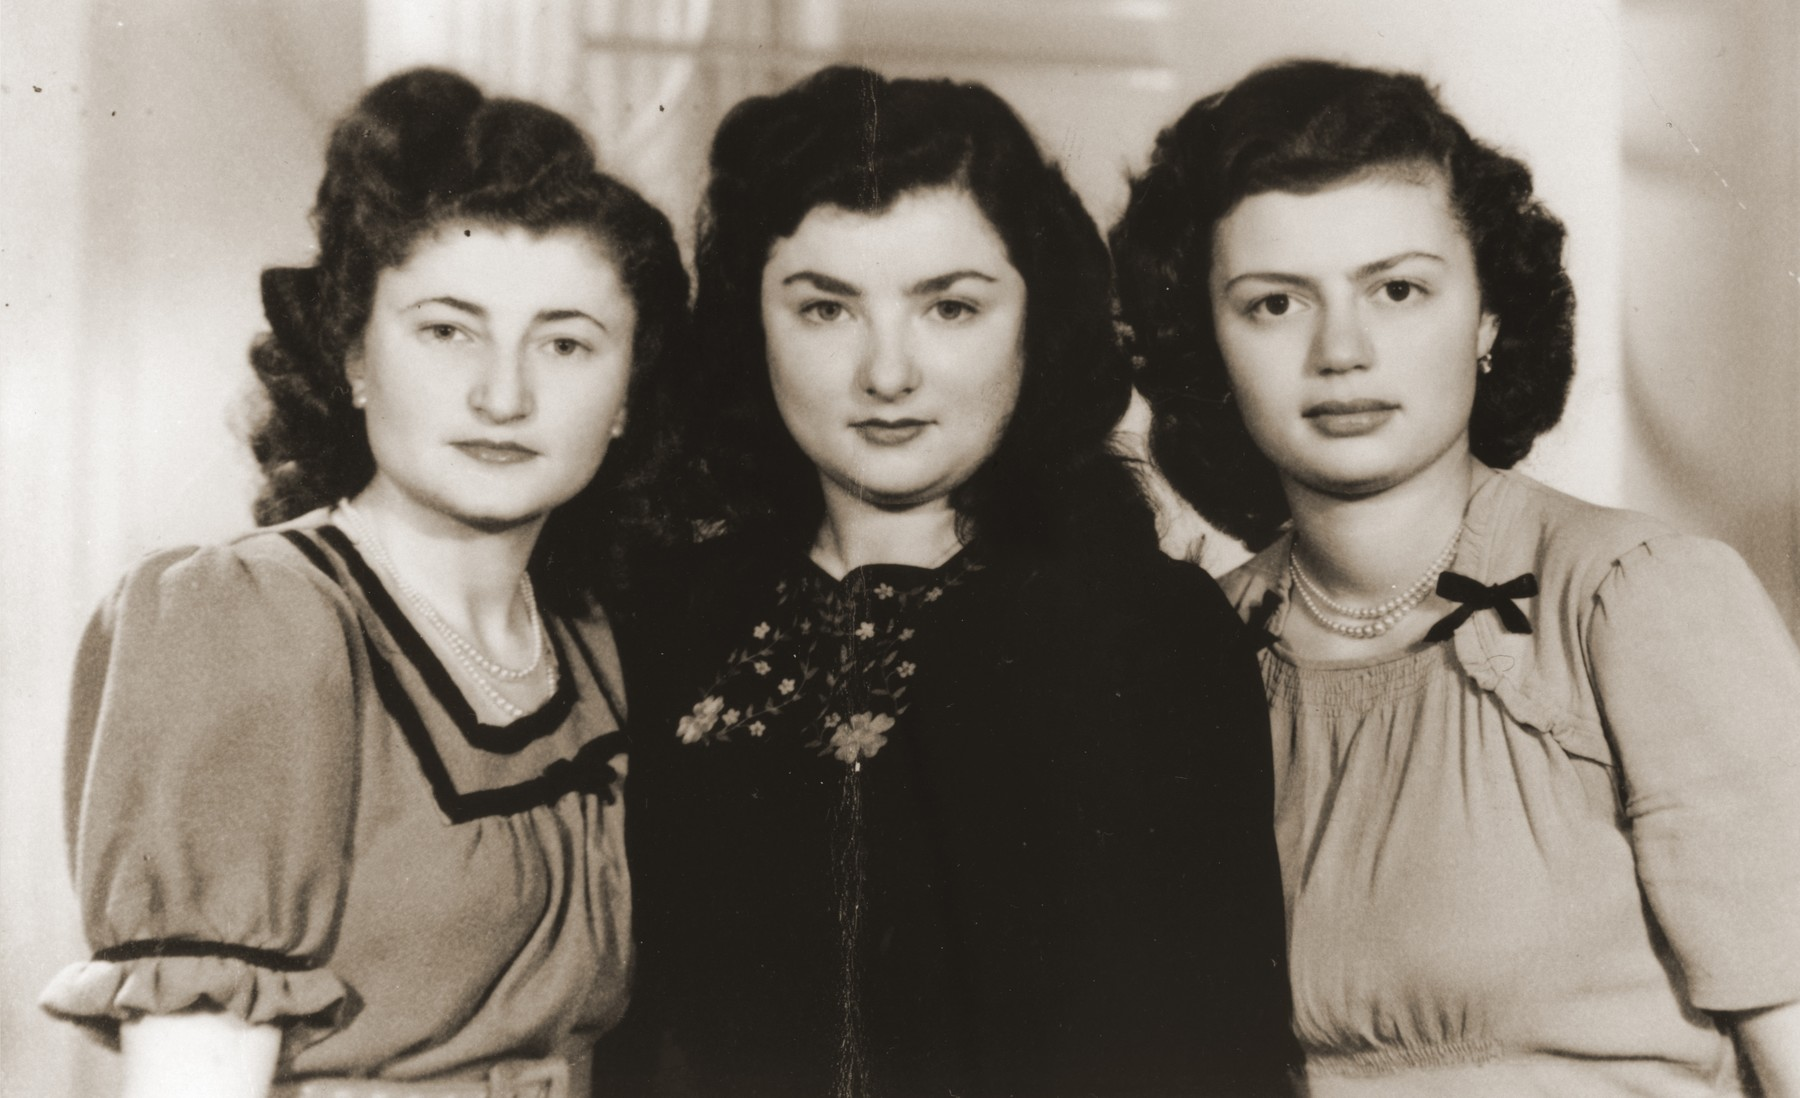 Portrait of three young Jewish women who were brought to England after the war on the orphans transport.  Pictured from left to right are Irene Mermelstein, Helen Slomowitz and Erika Vermes.